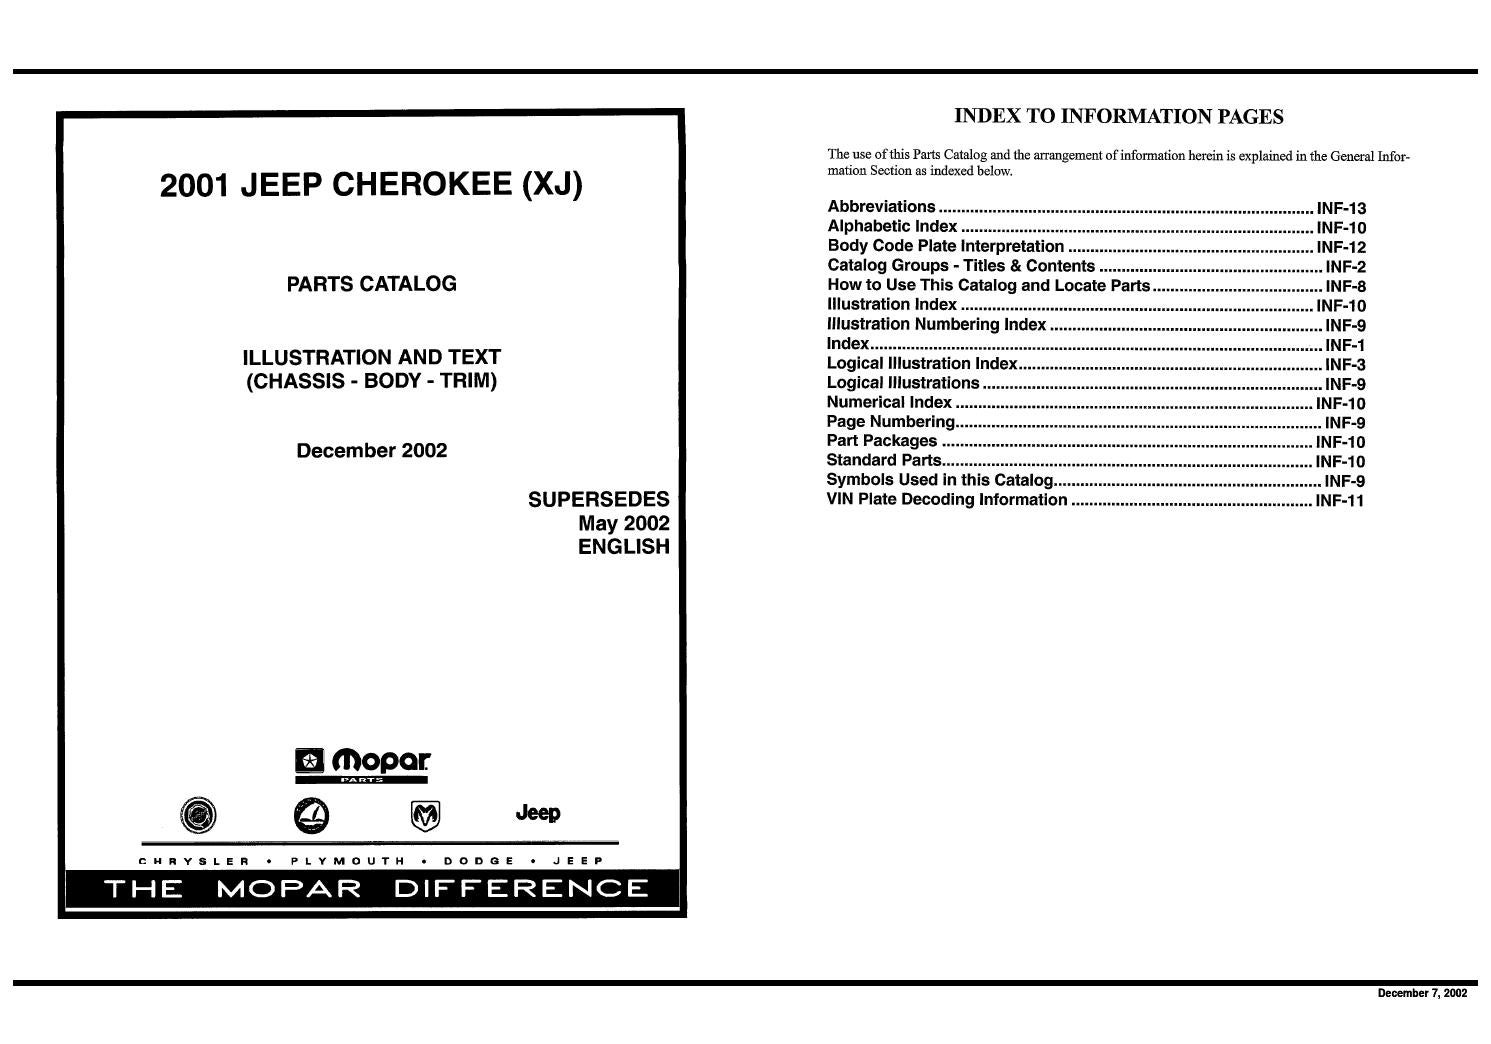 2001 jeep cherokee xj parts catalog by memo nunez